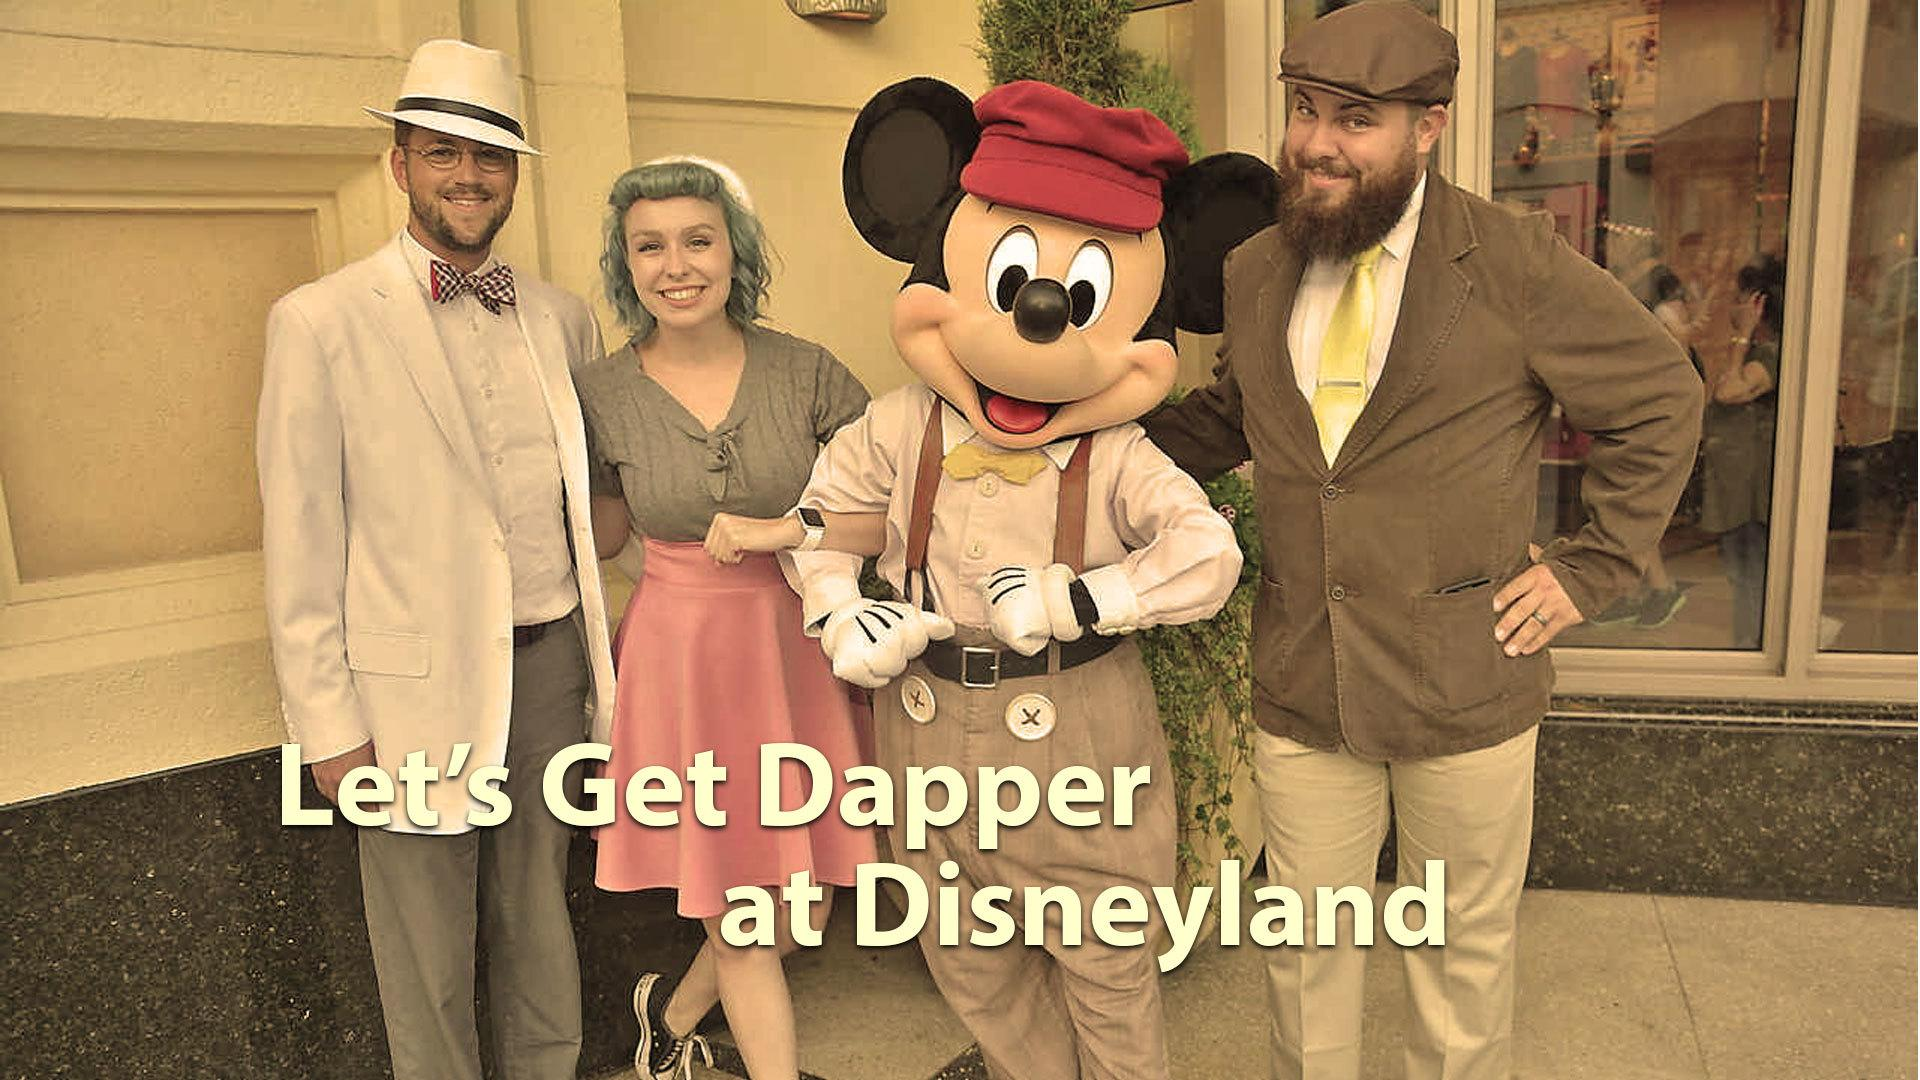 Let's Get Dapper at Disneyland - Geeks Corner - Episode 630